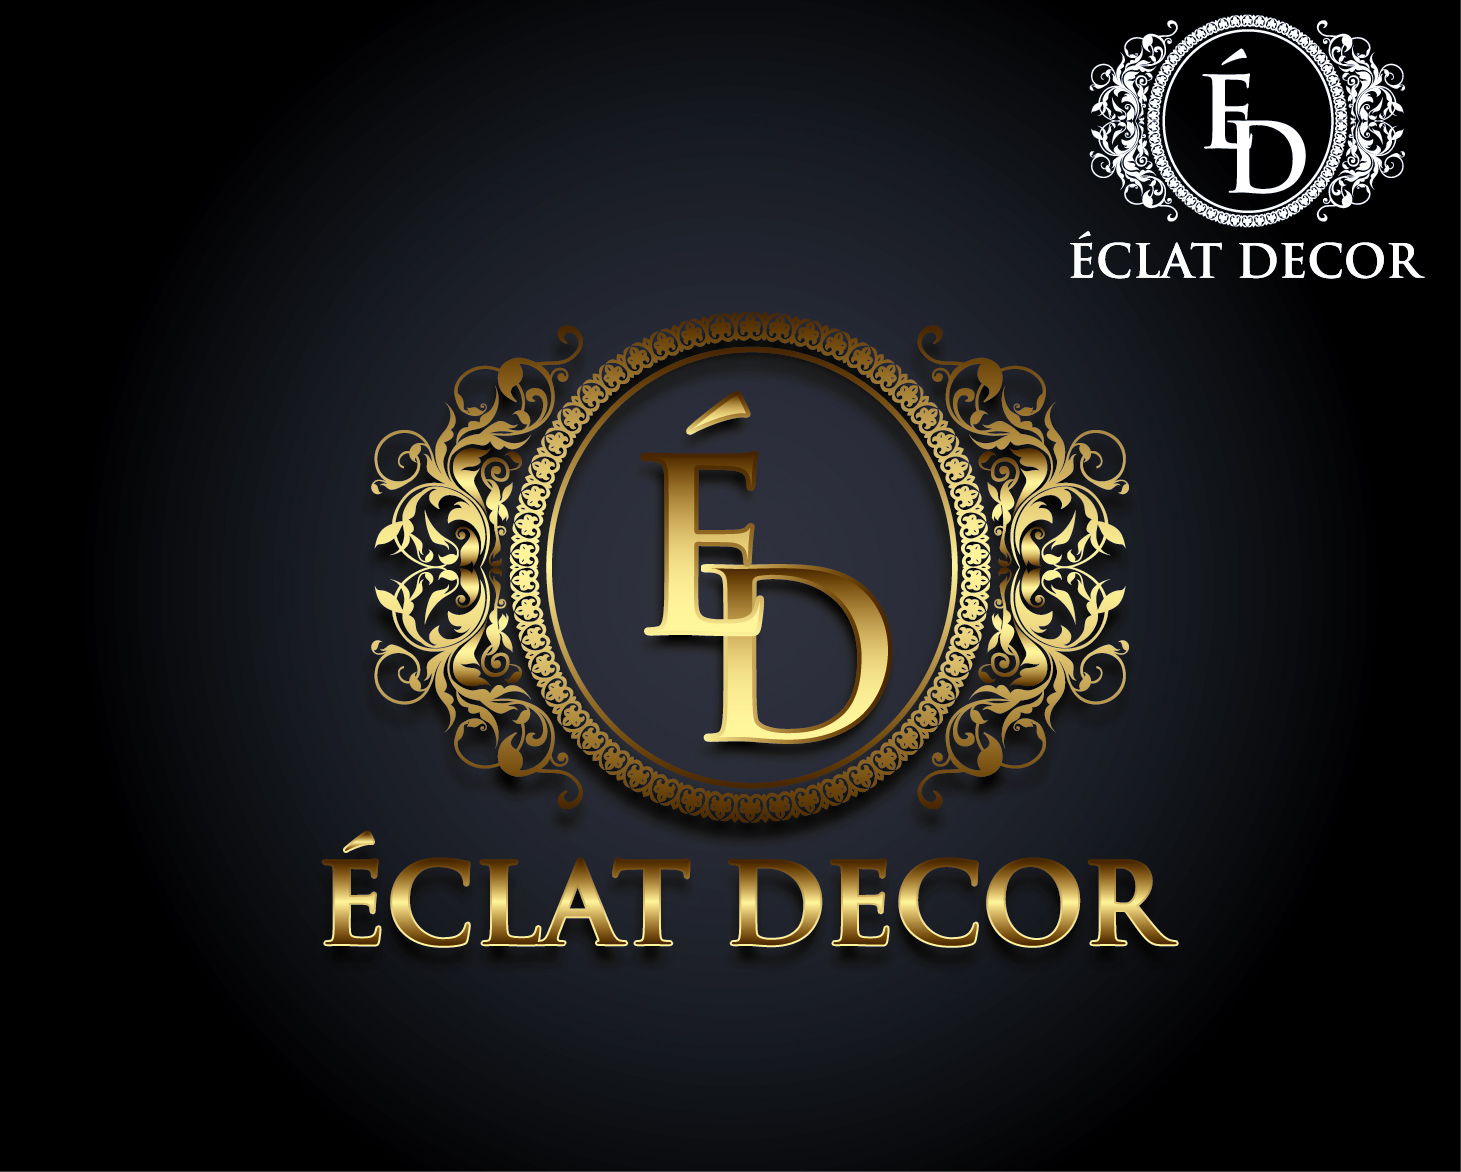 Logo Design by VENTSISLAV KOVACHEV - Entry No. 61 in the Logo Design Contest Imaginative Logo Design for Éclat Decor.